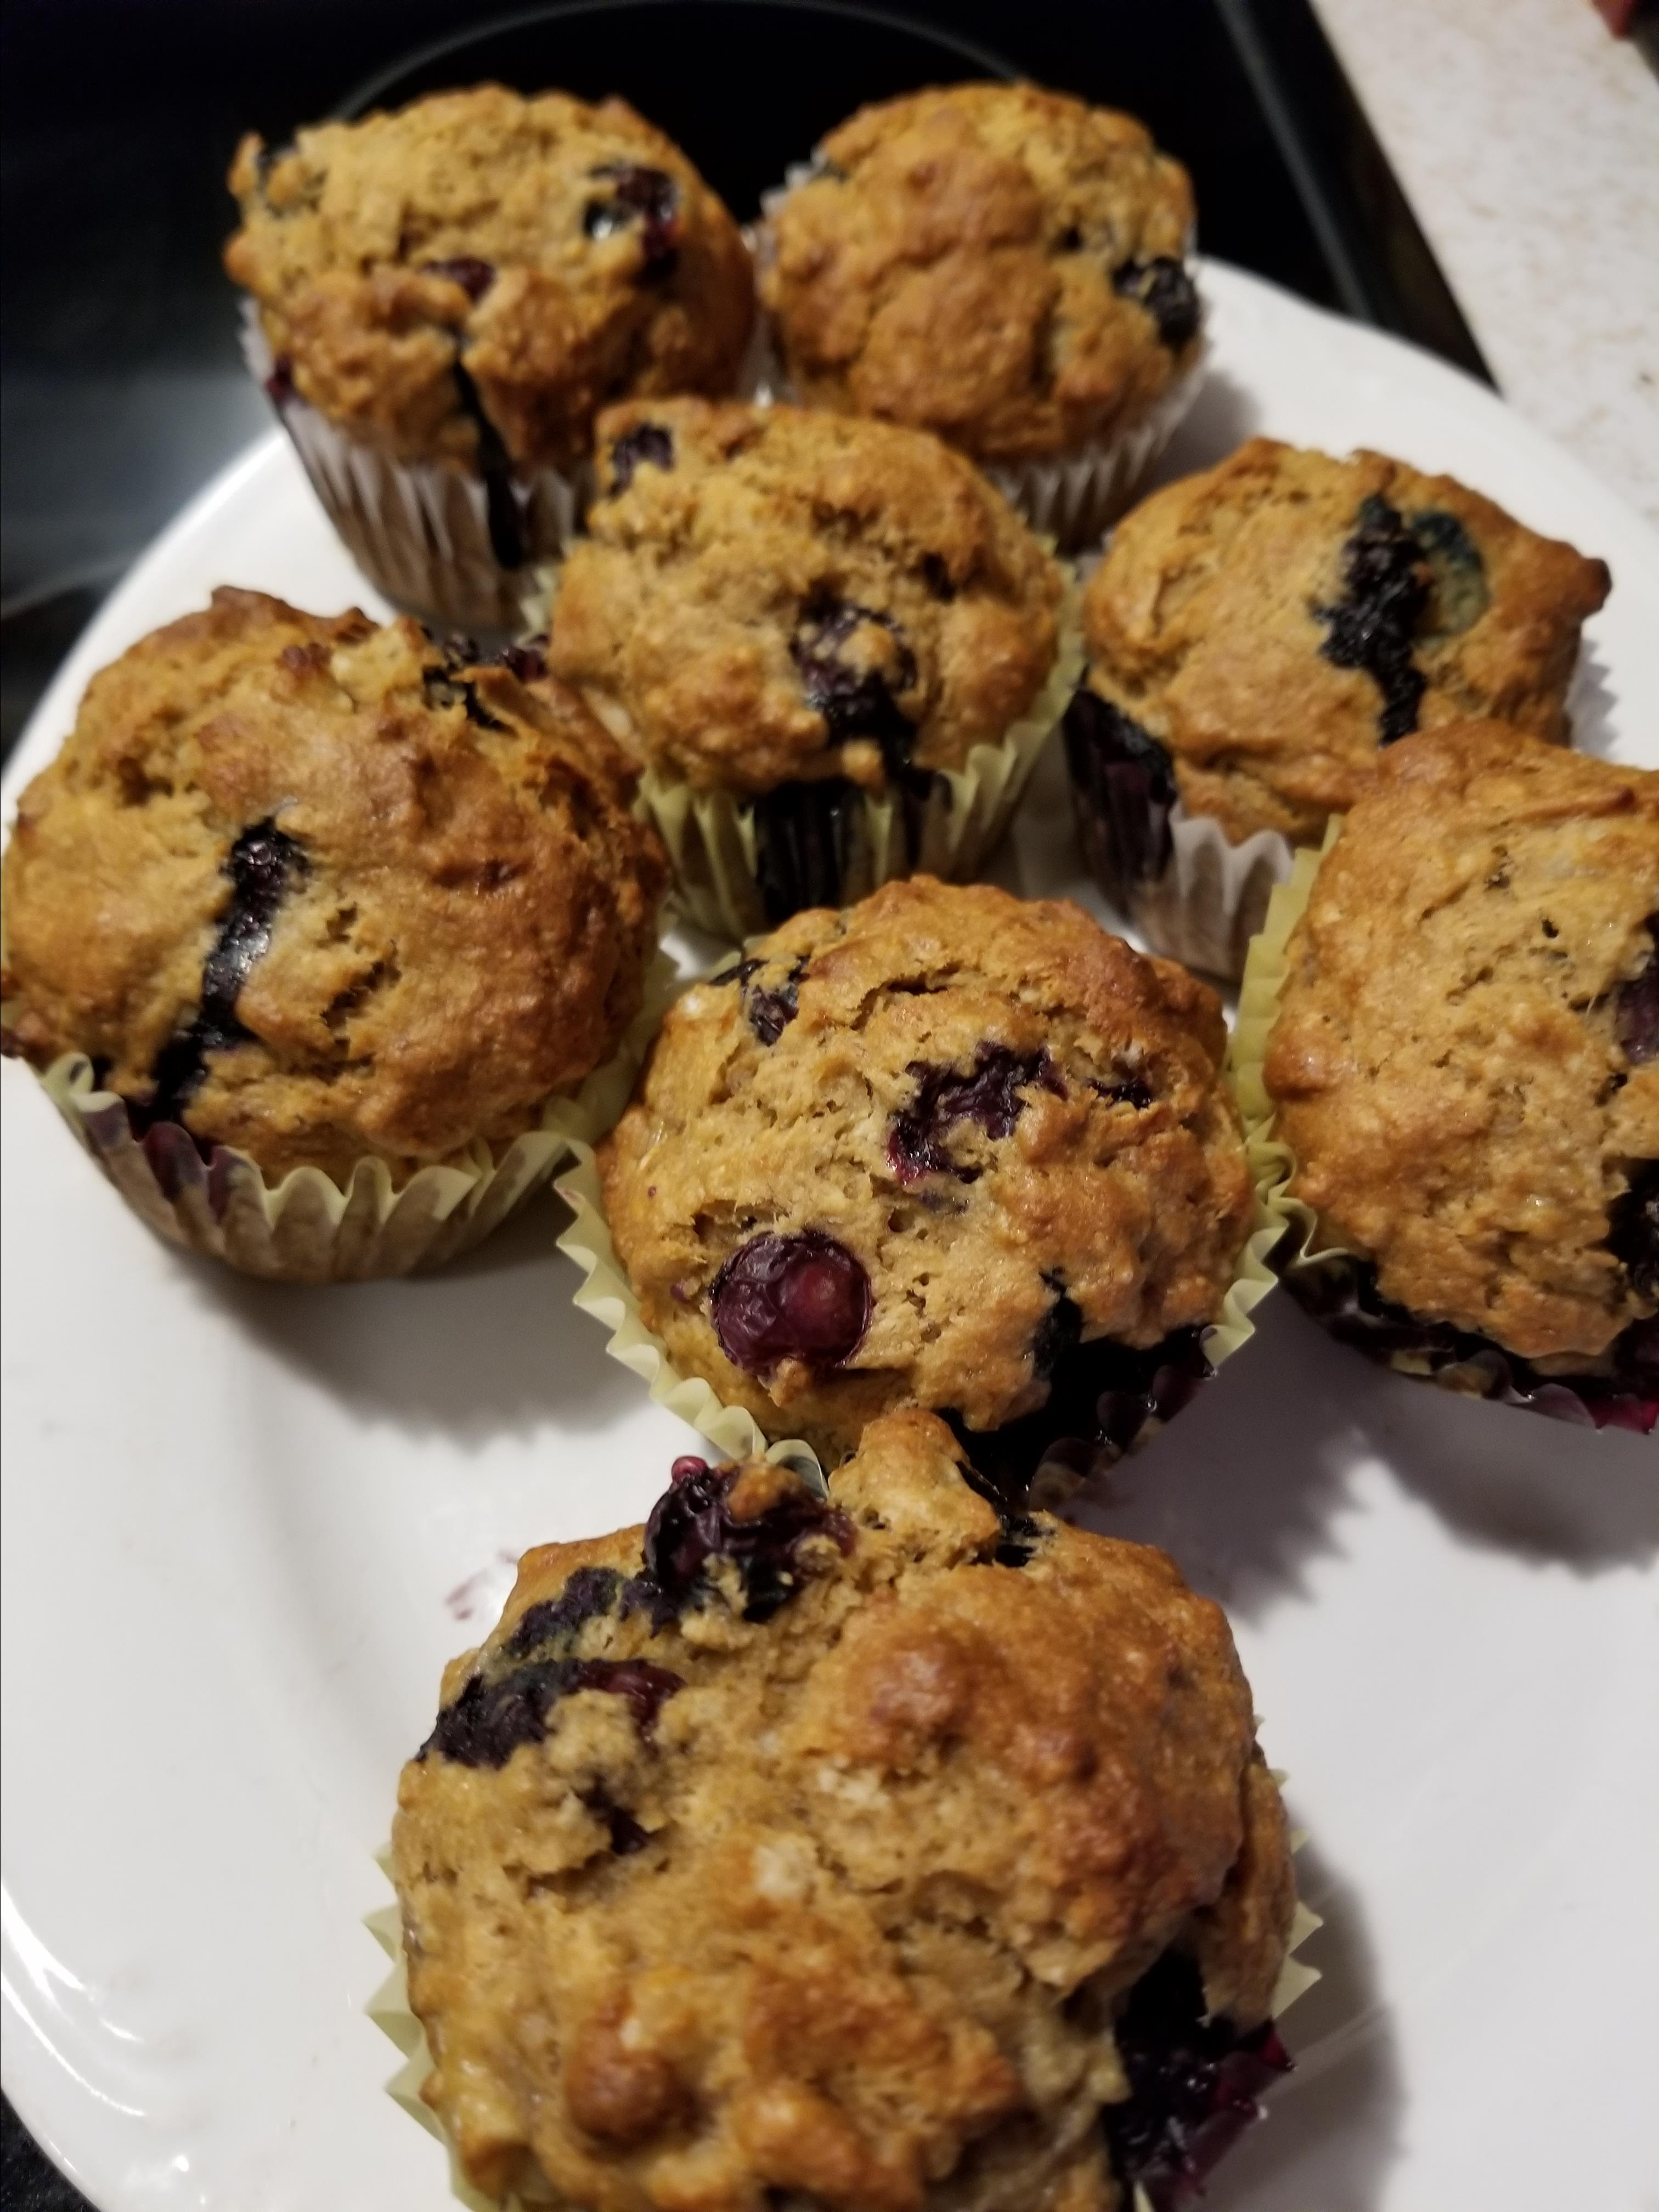 Delicious and Nutritious Whole Wheat Banana and Blueberry Muffins jan